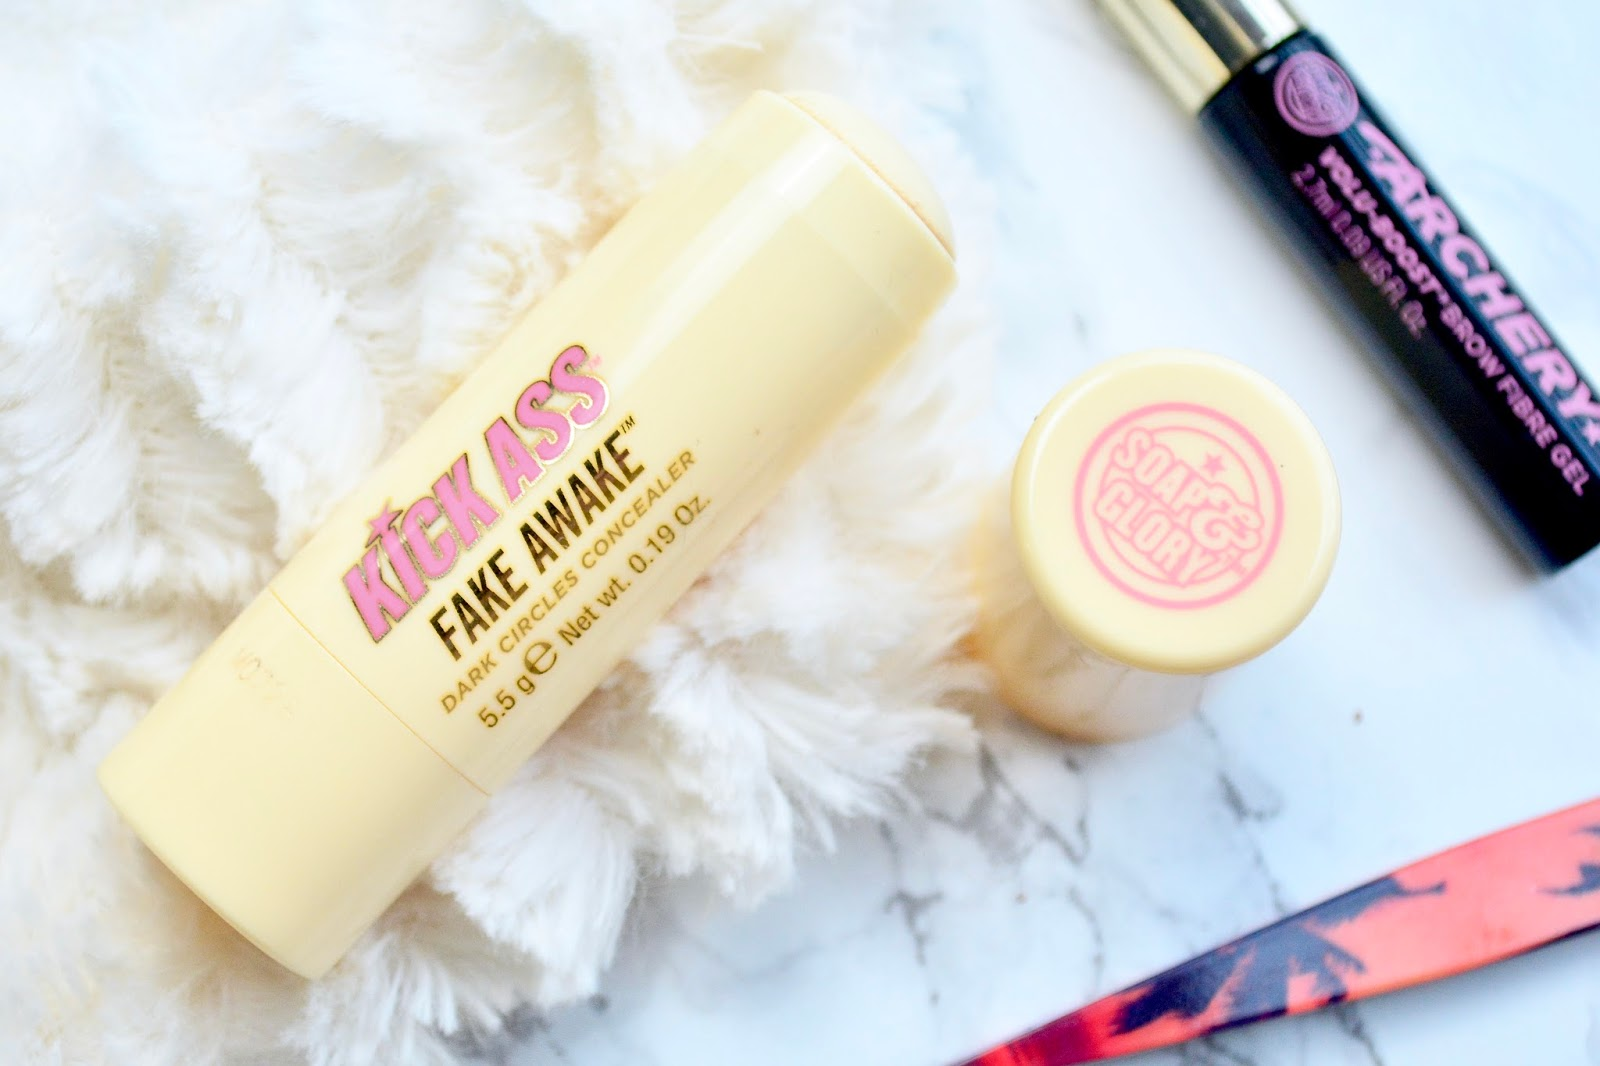 Soap & Glory Kick Ass Fake Awake